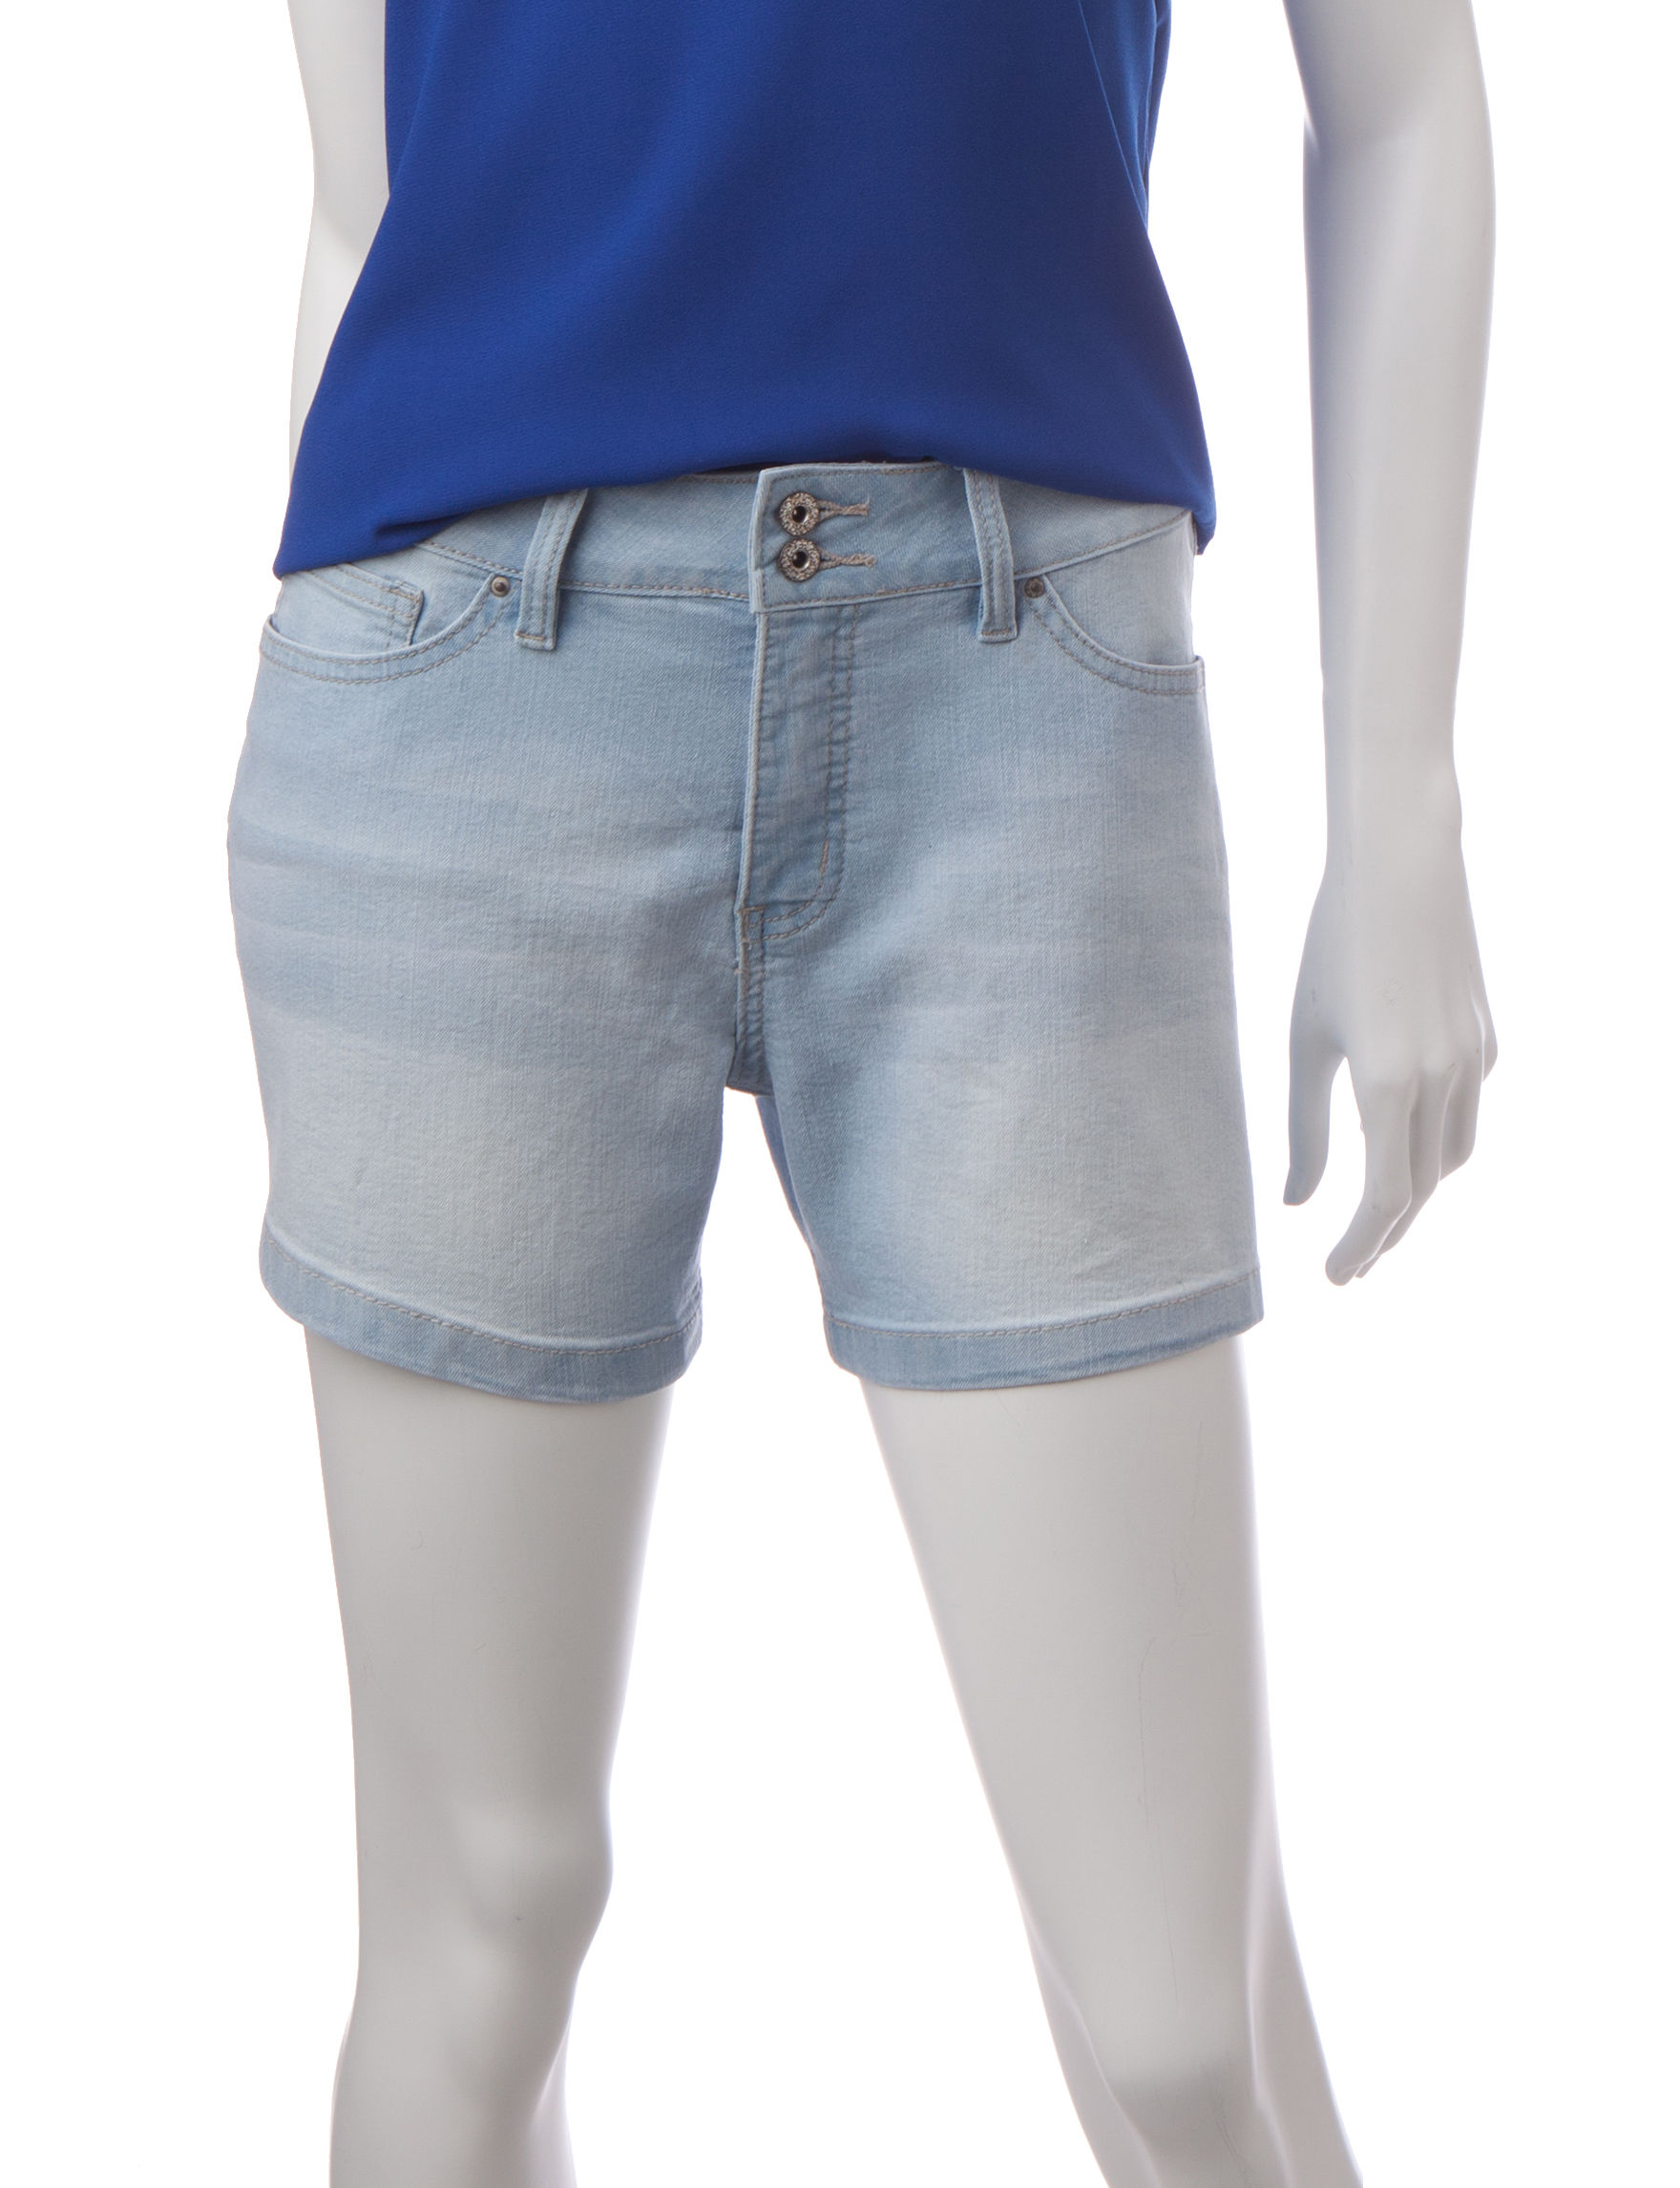 Signature Studio Blue Denim Shorts Hi Waist